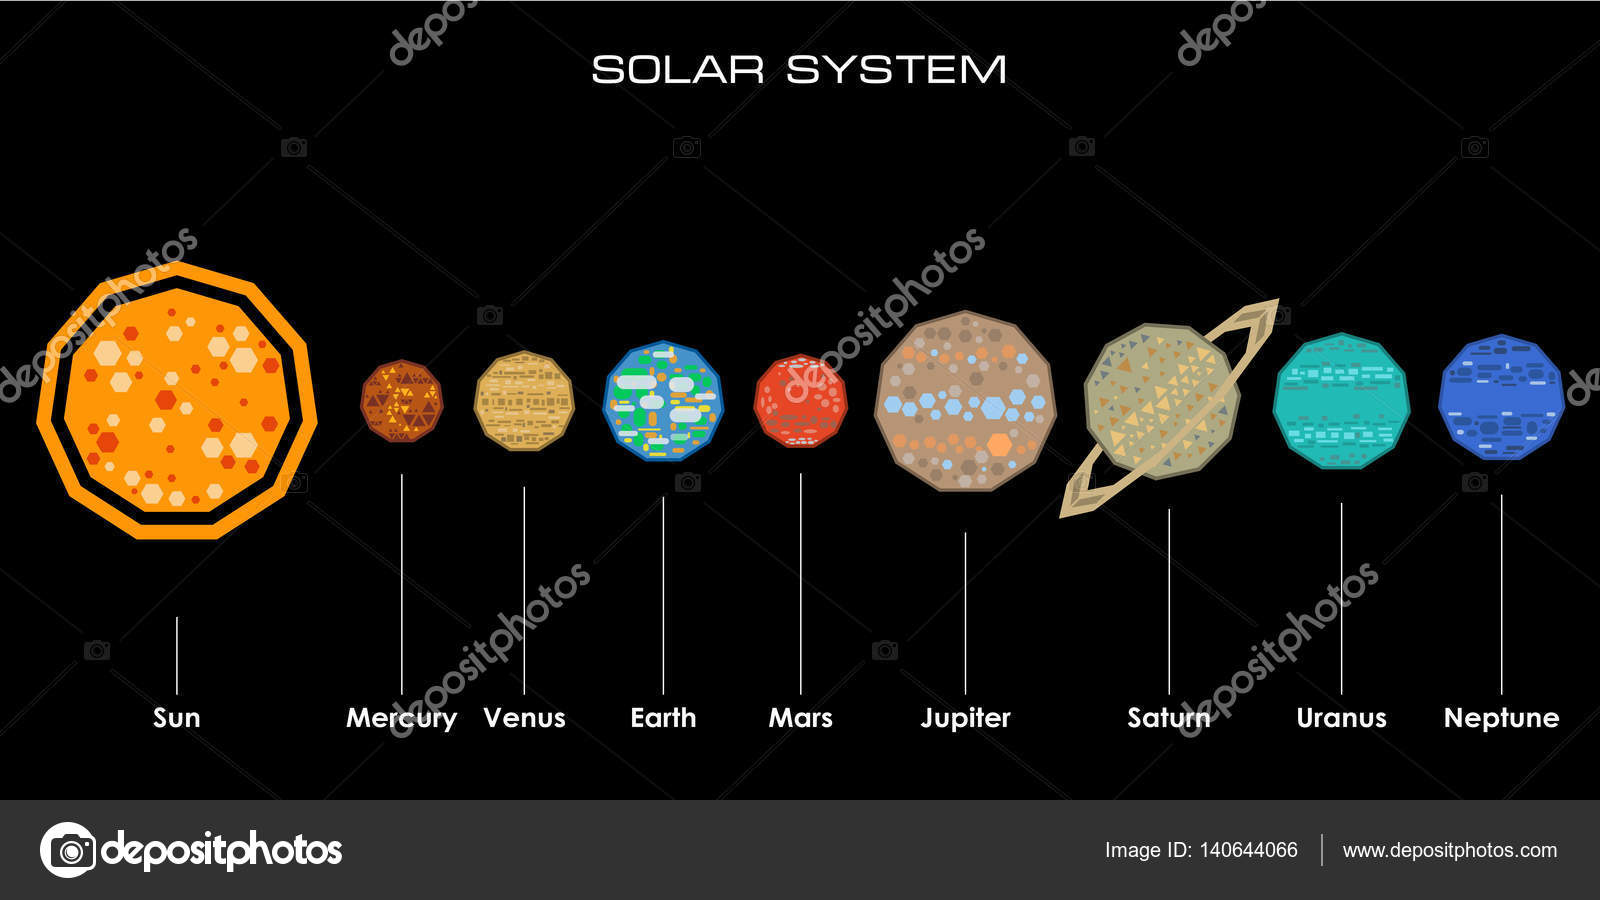 Simple Diagram Of The Solar System